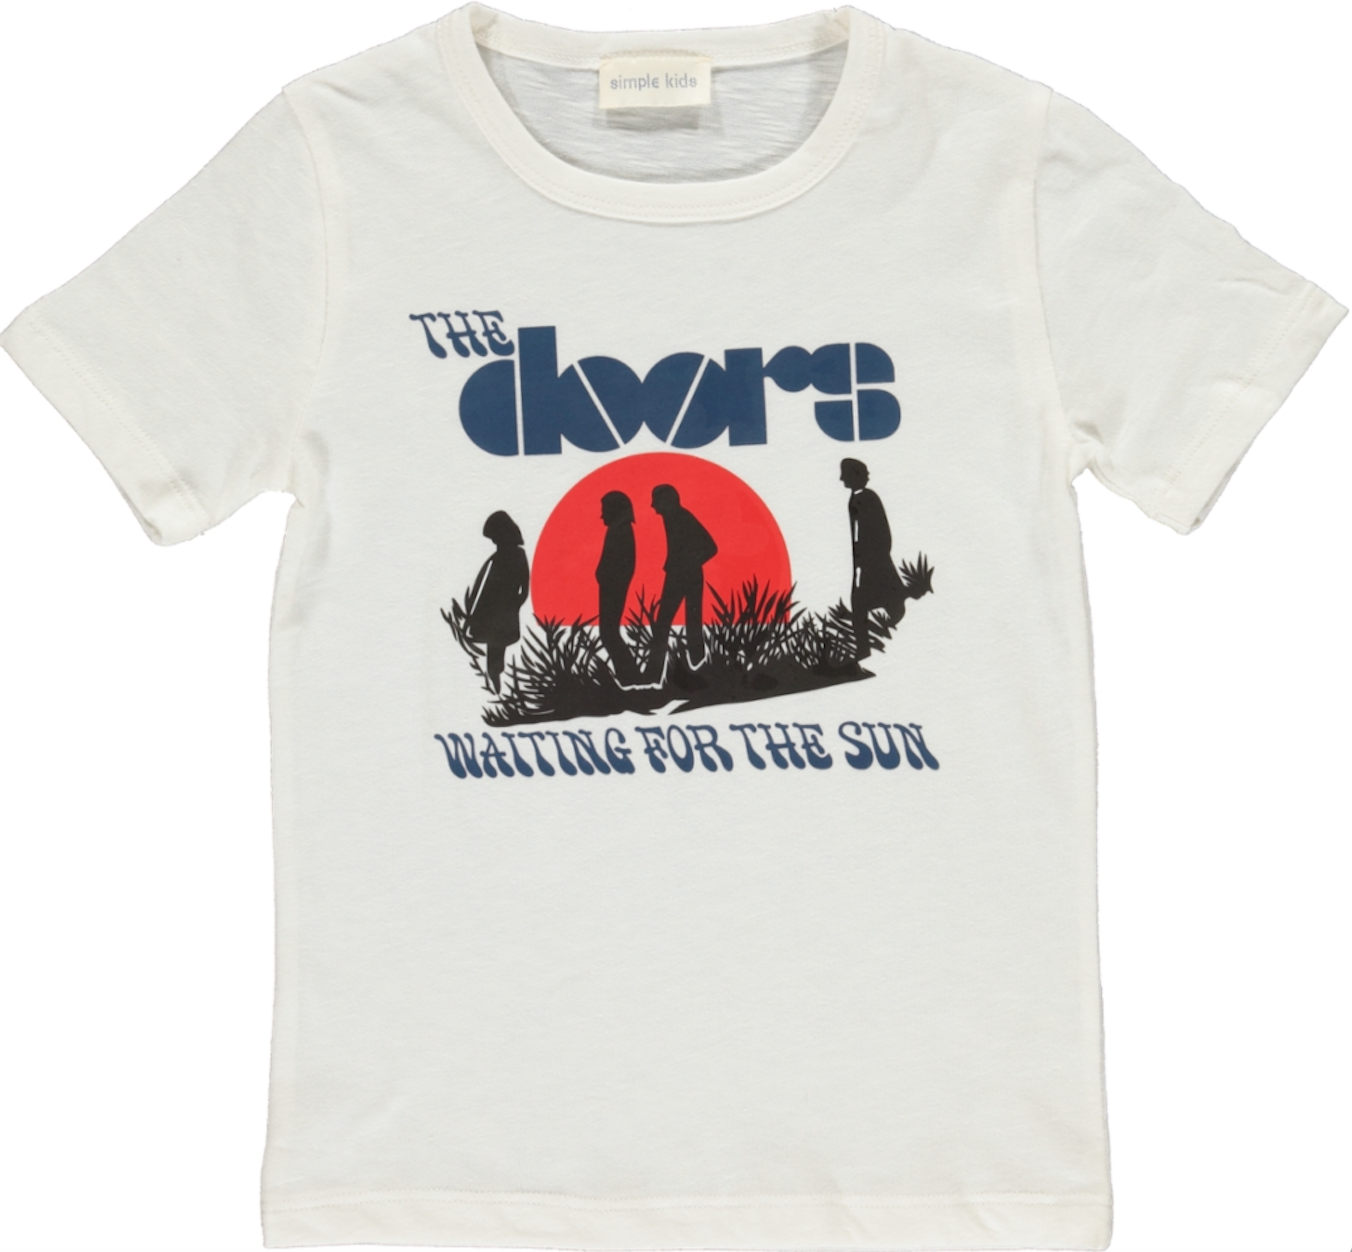 Simple Kids Doors Tshirt Milk